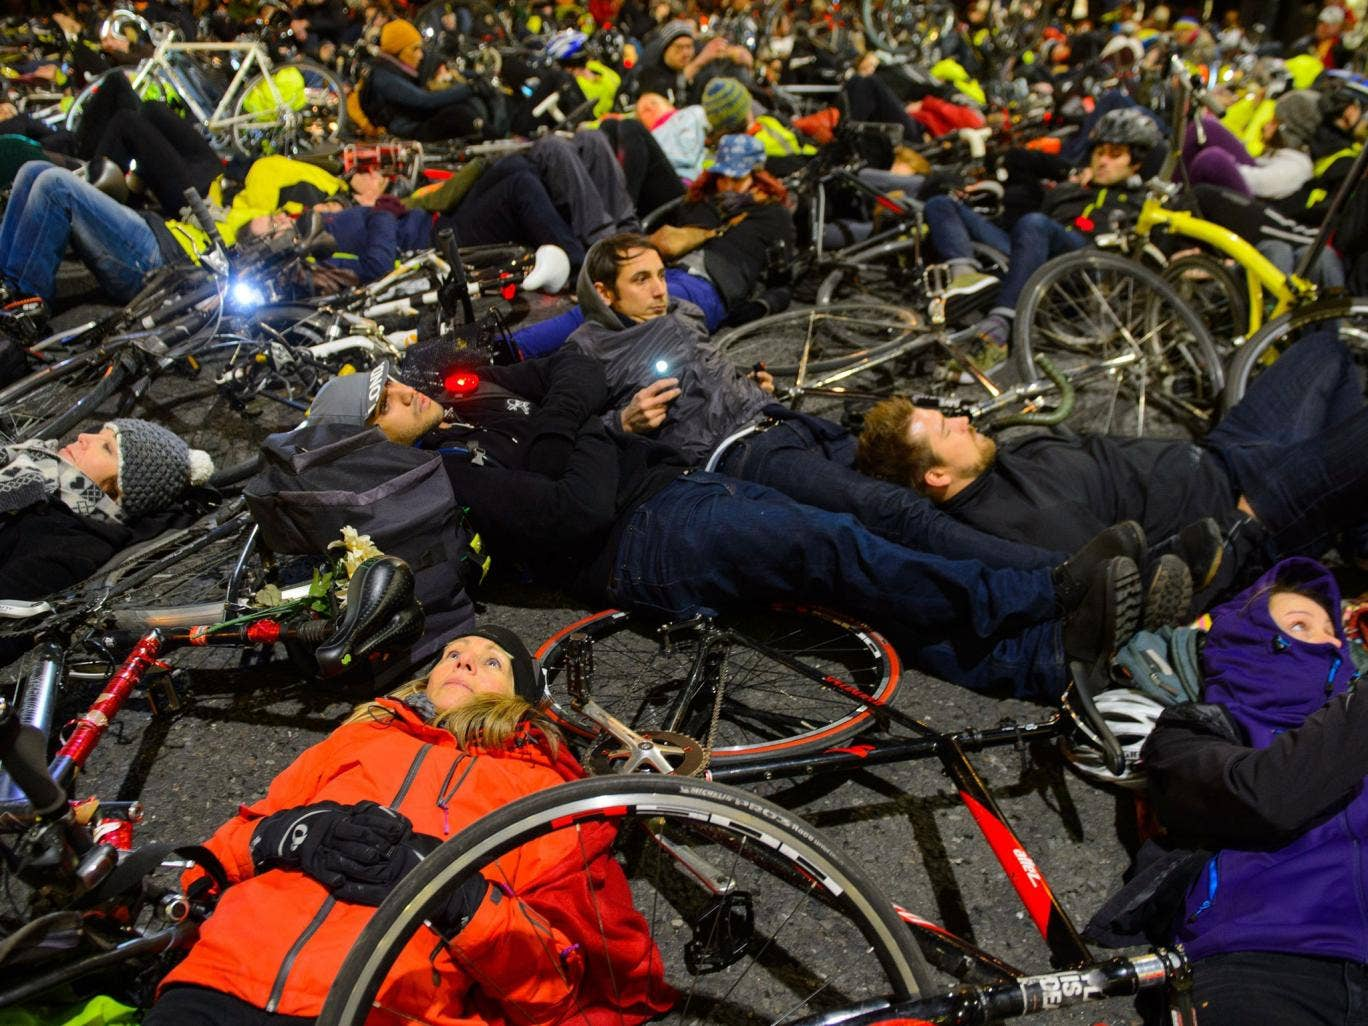 Cyclists took part in a 'die-in' protest in London